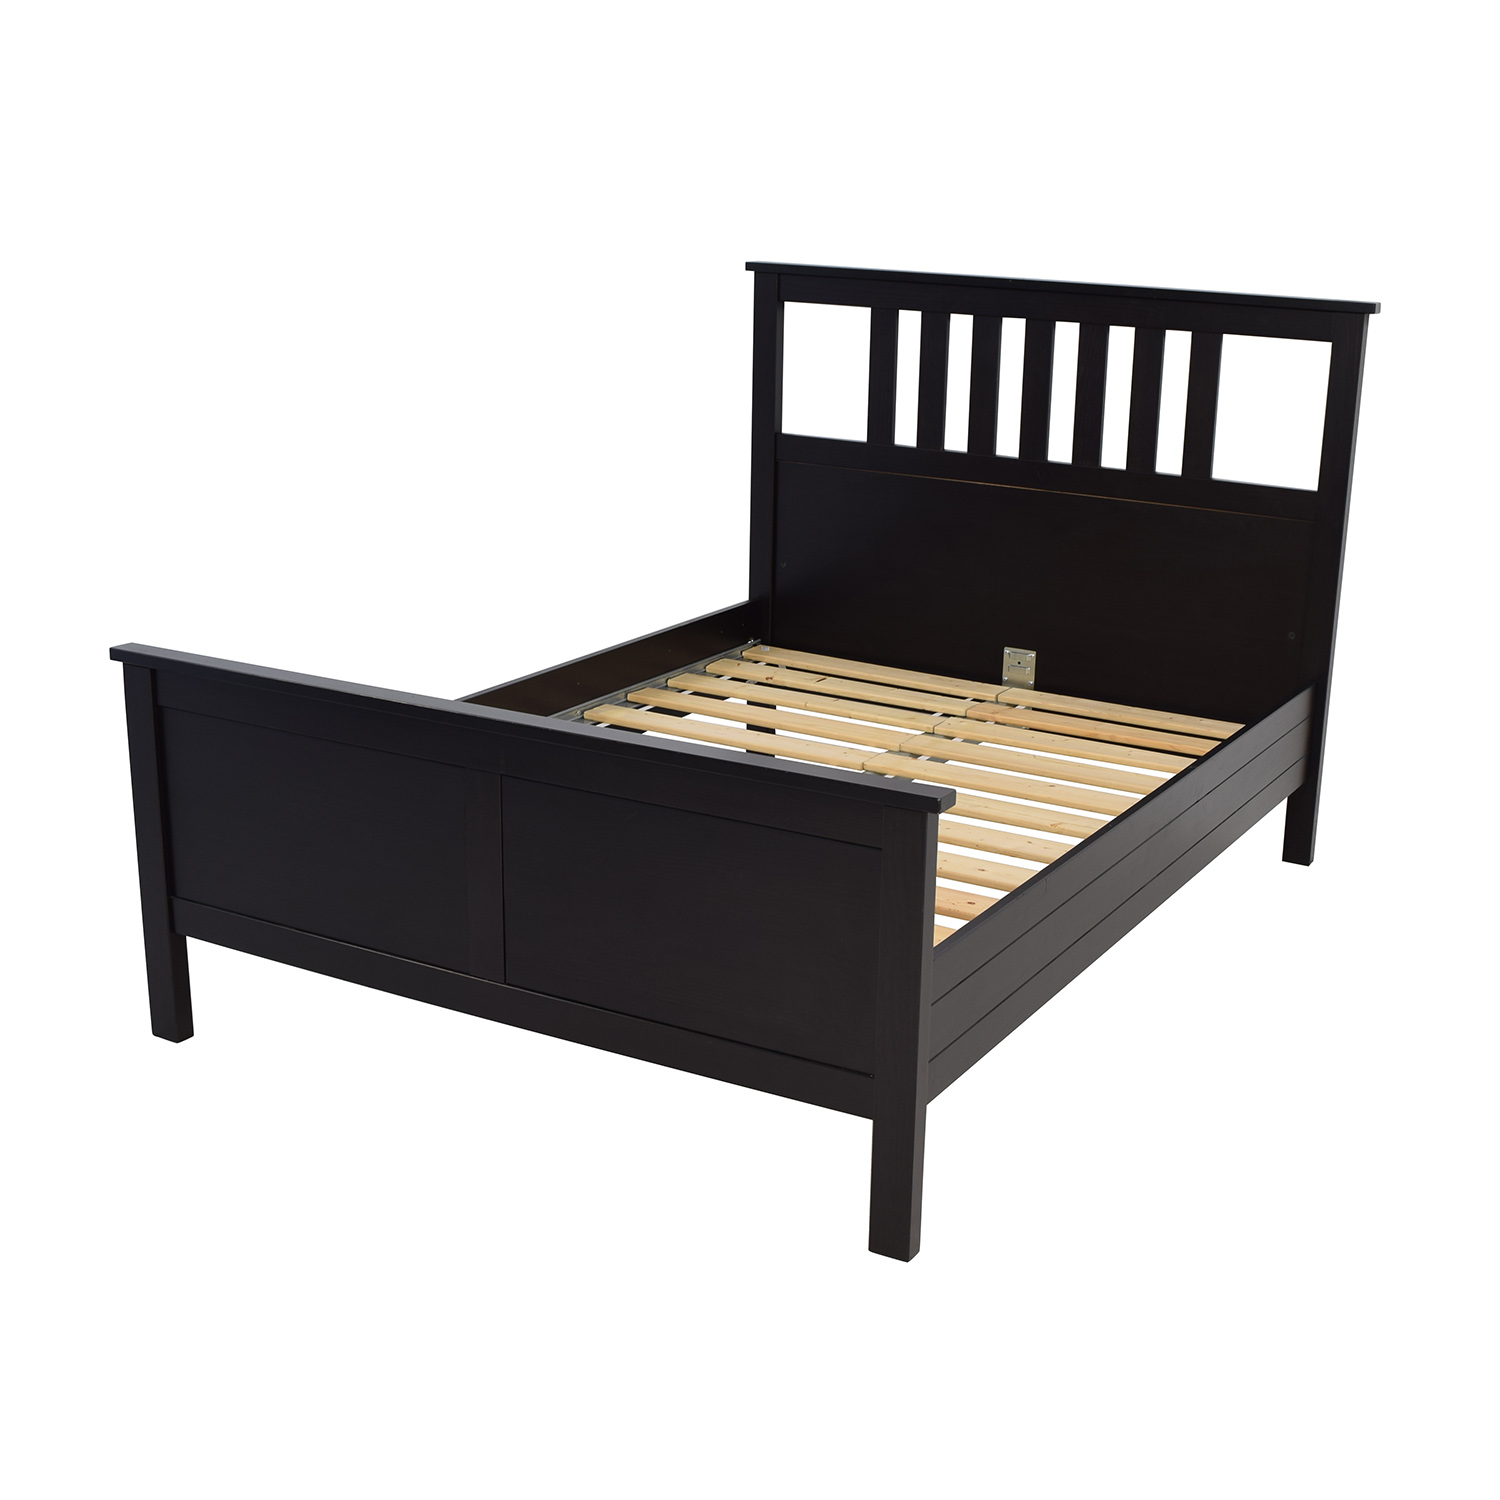 53 off ikea ikea dark brown wood queen bed frame beds - Ikea wood futon frame ...